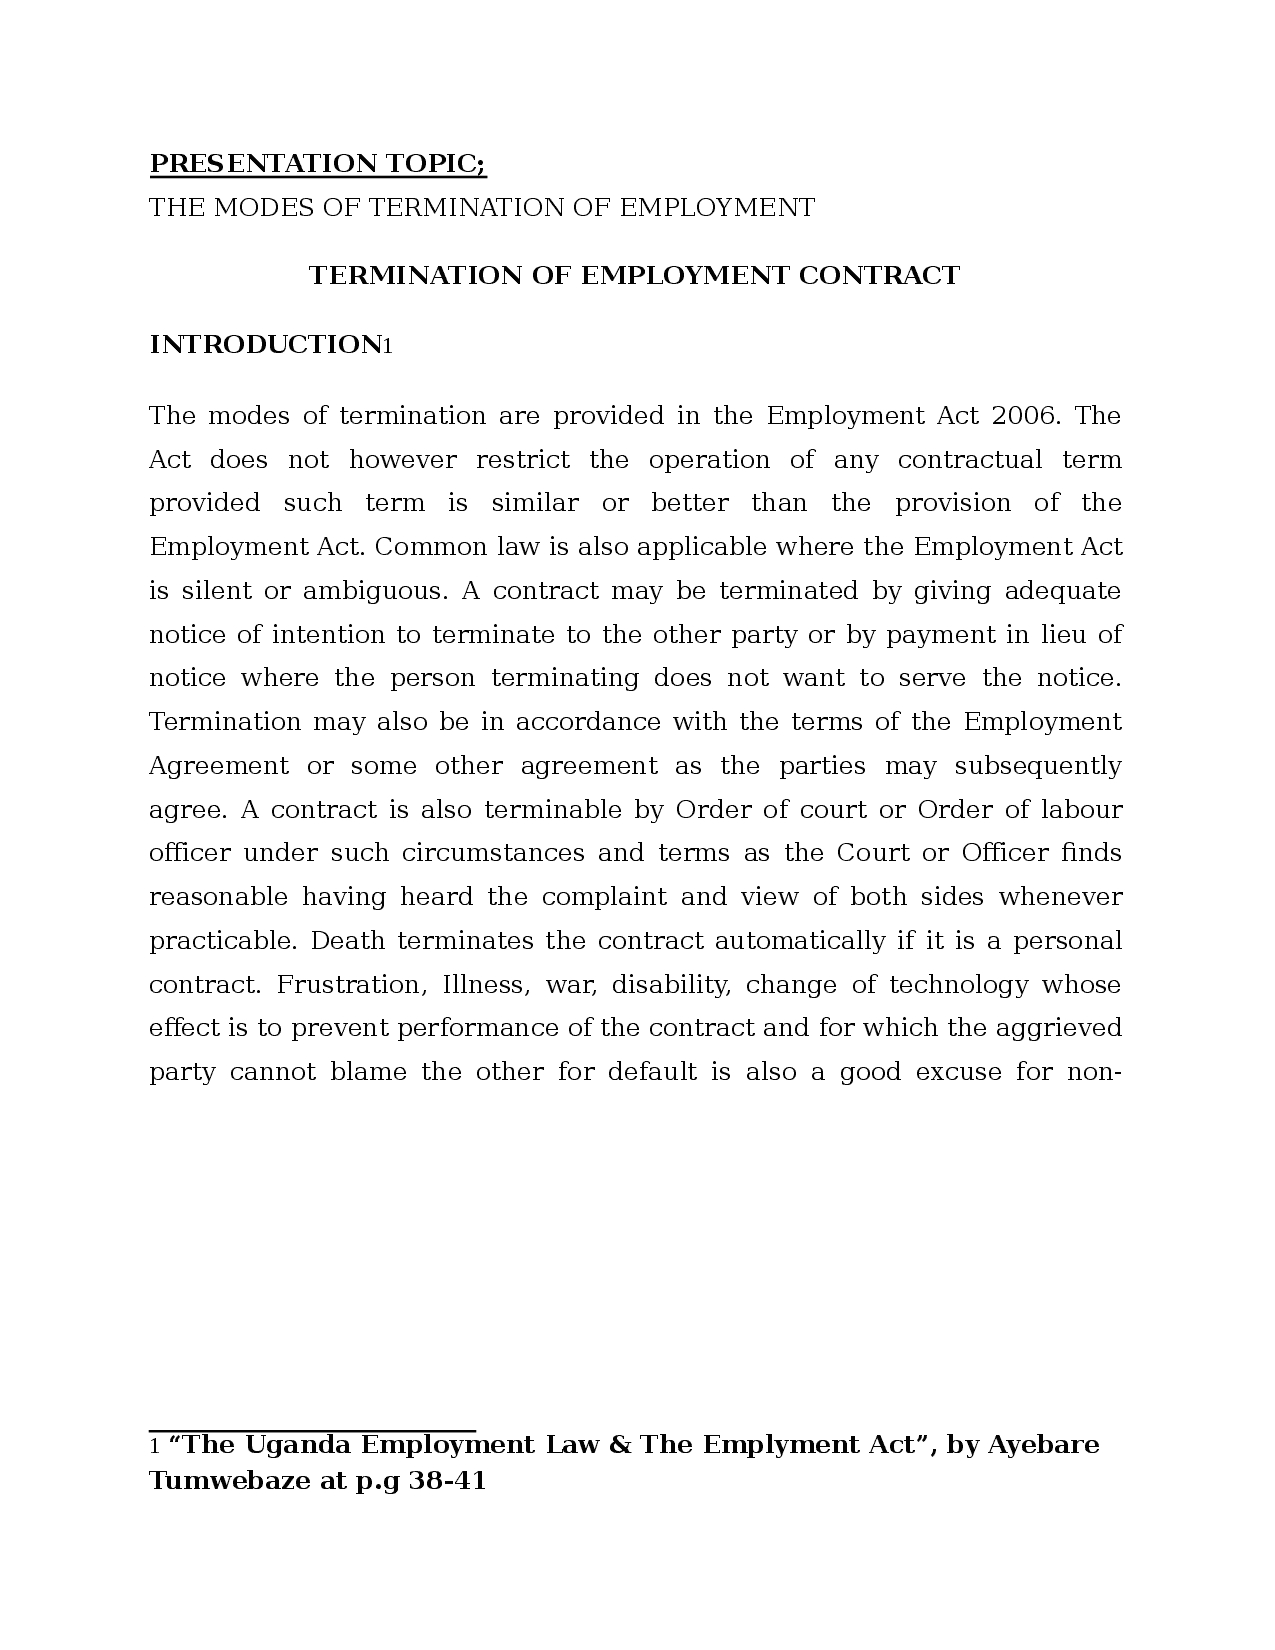 Employee Termination Agreement Sample Modes Of Termination Of Contract Of Employment Docsity